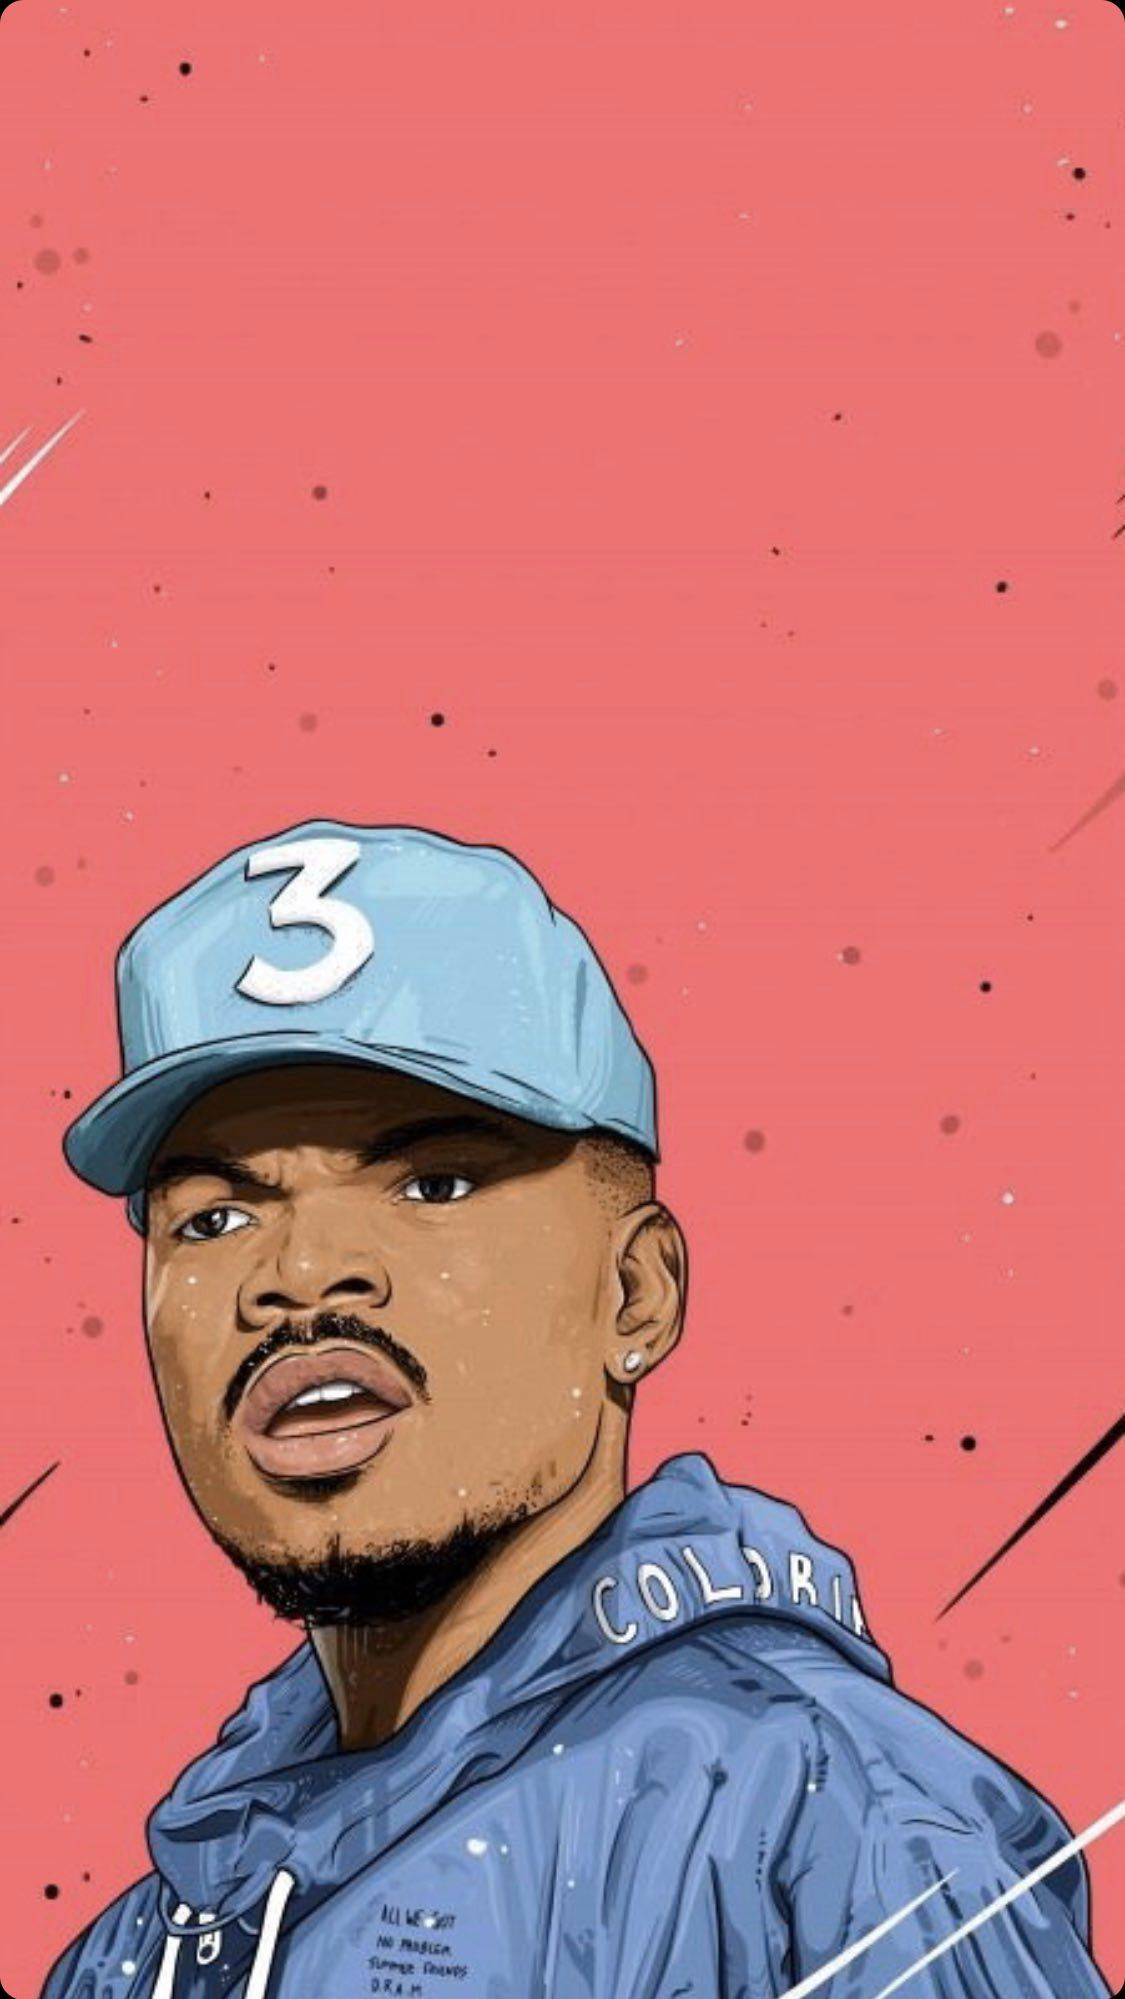 Chanceperdomo Chanceperez Chancequotes Chancetherapper Chancetherapperpainting Ch Chance The Rapper Wallpaper Chance The Rapper Art Hip Hop Artwork